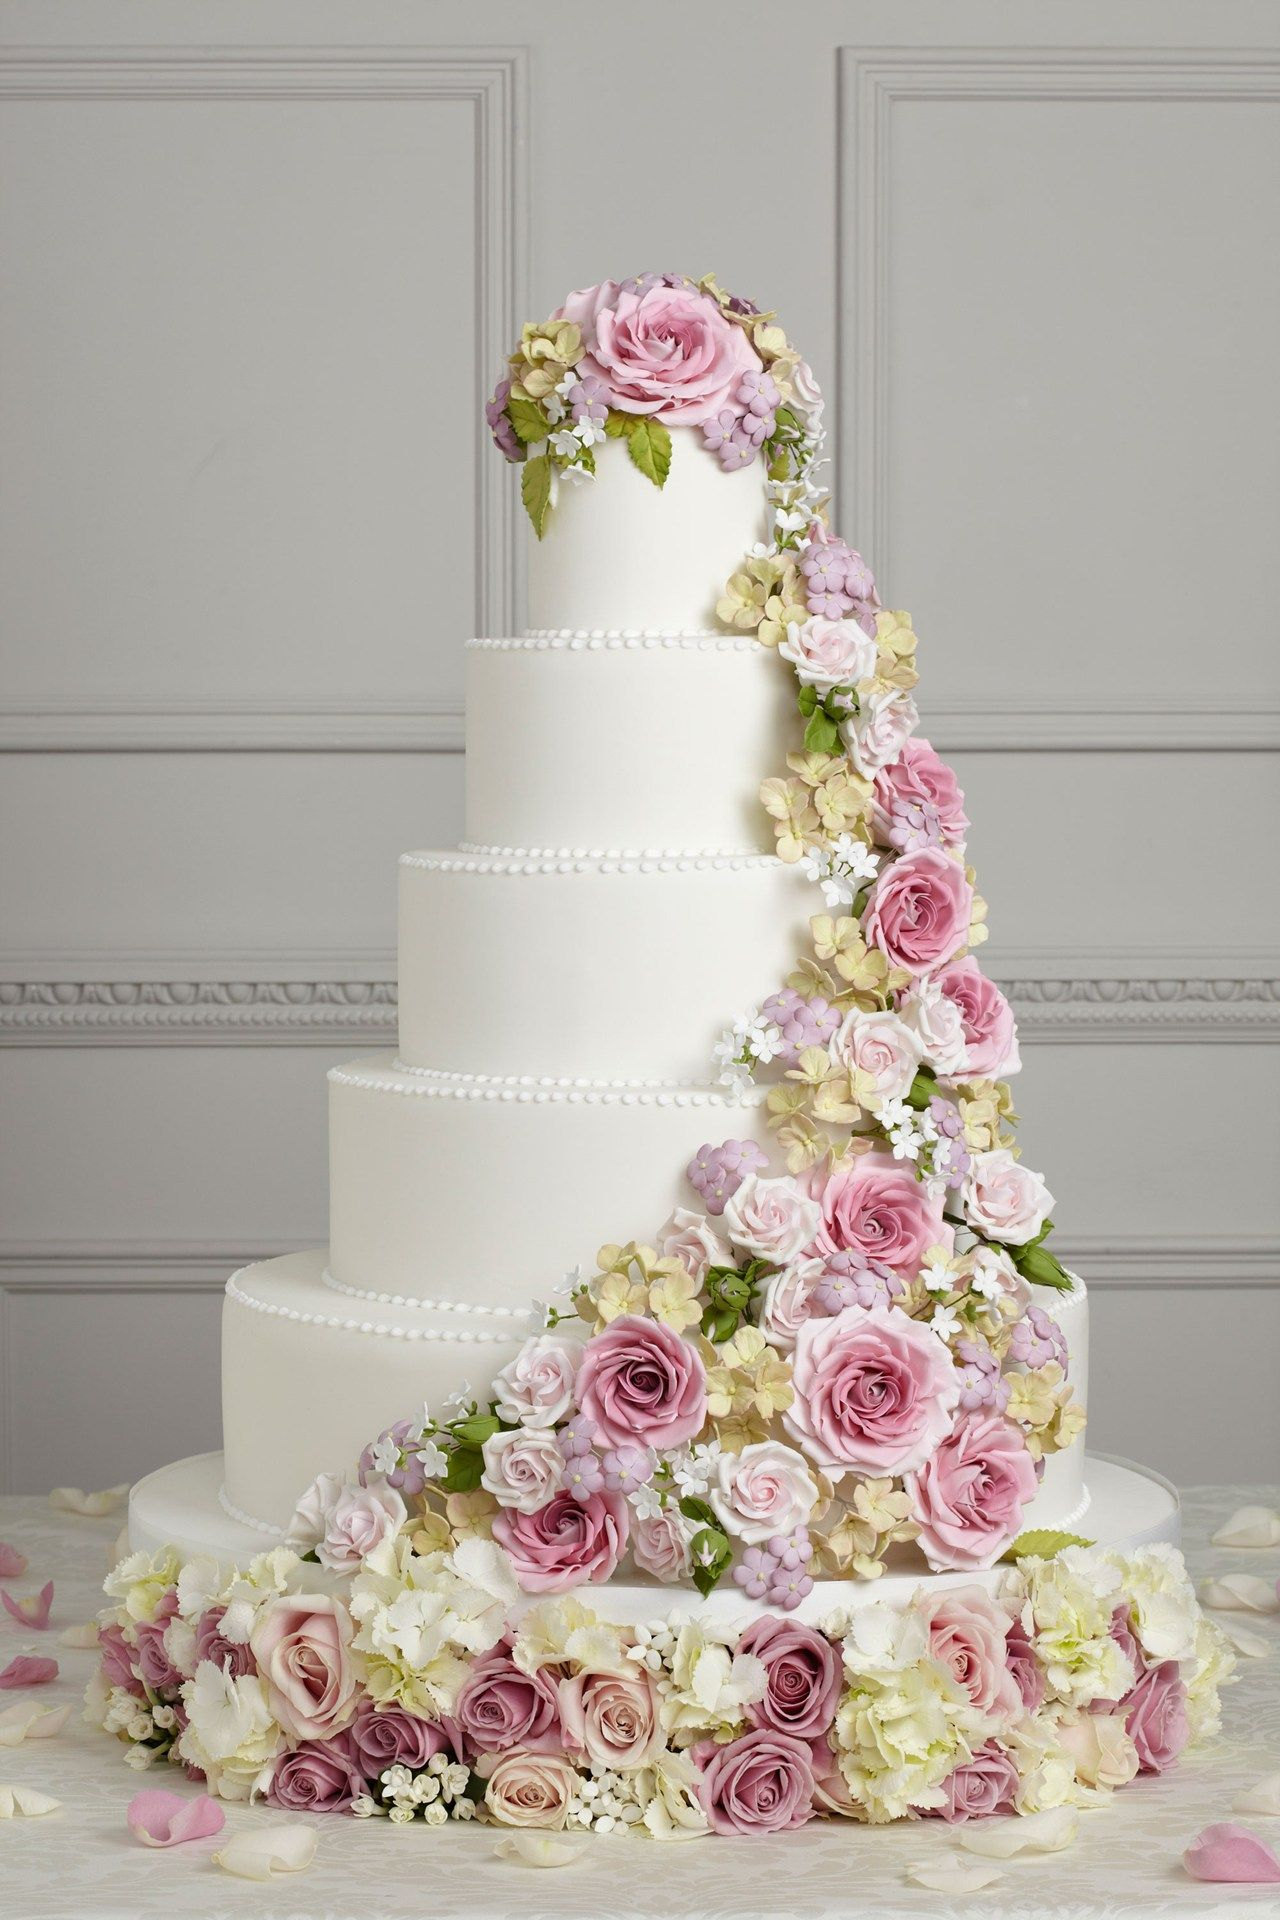 Iced Wedding Cake Collection   Cake, Wedding and Floral